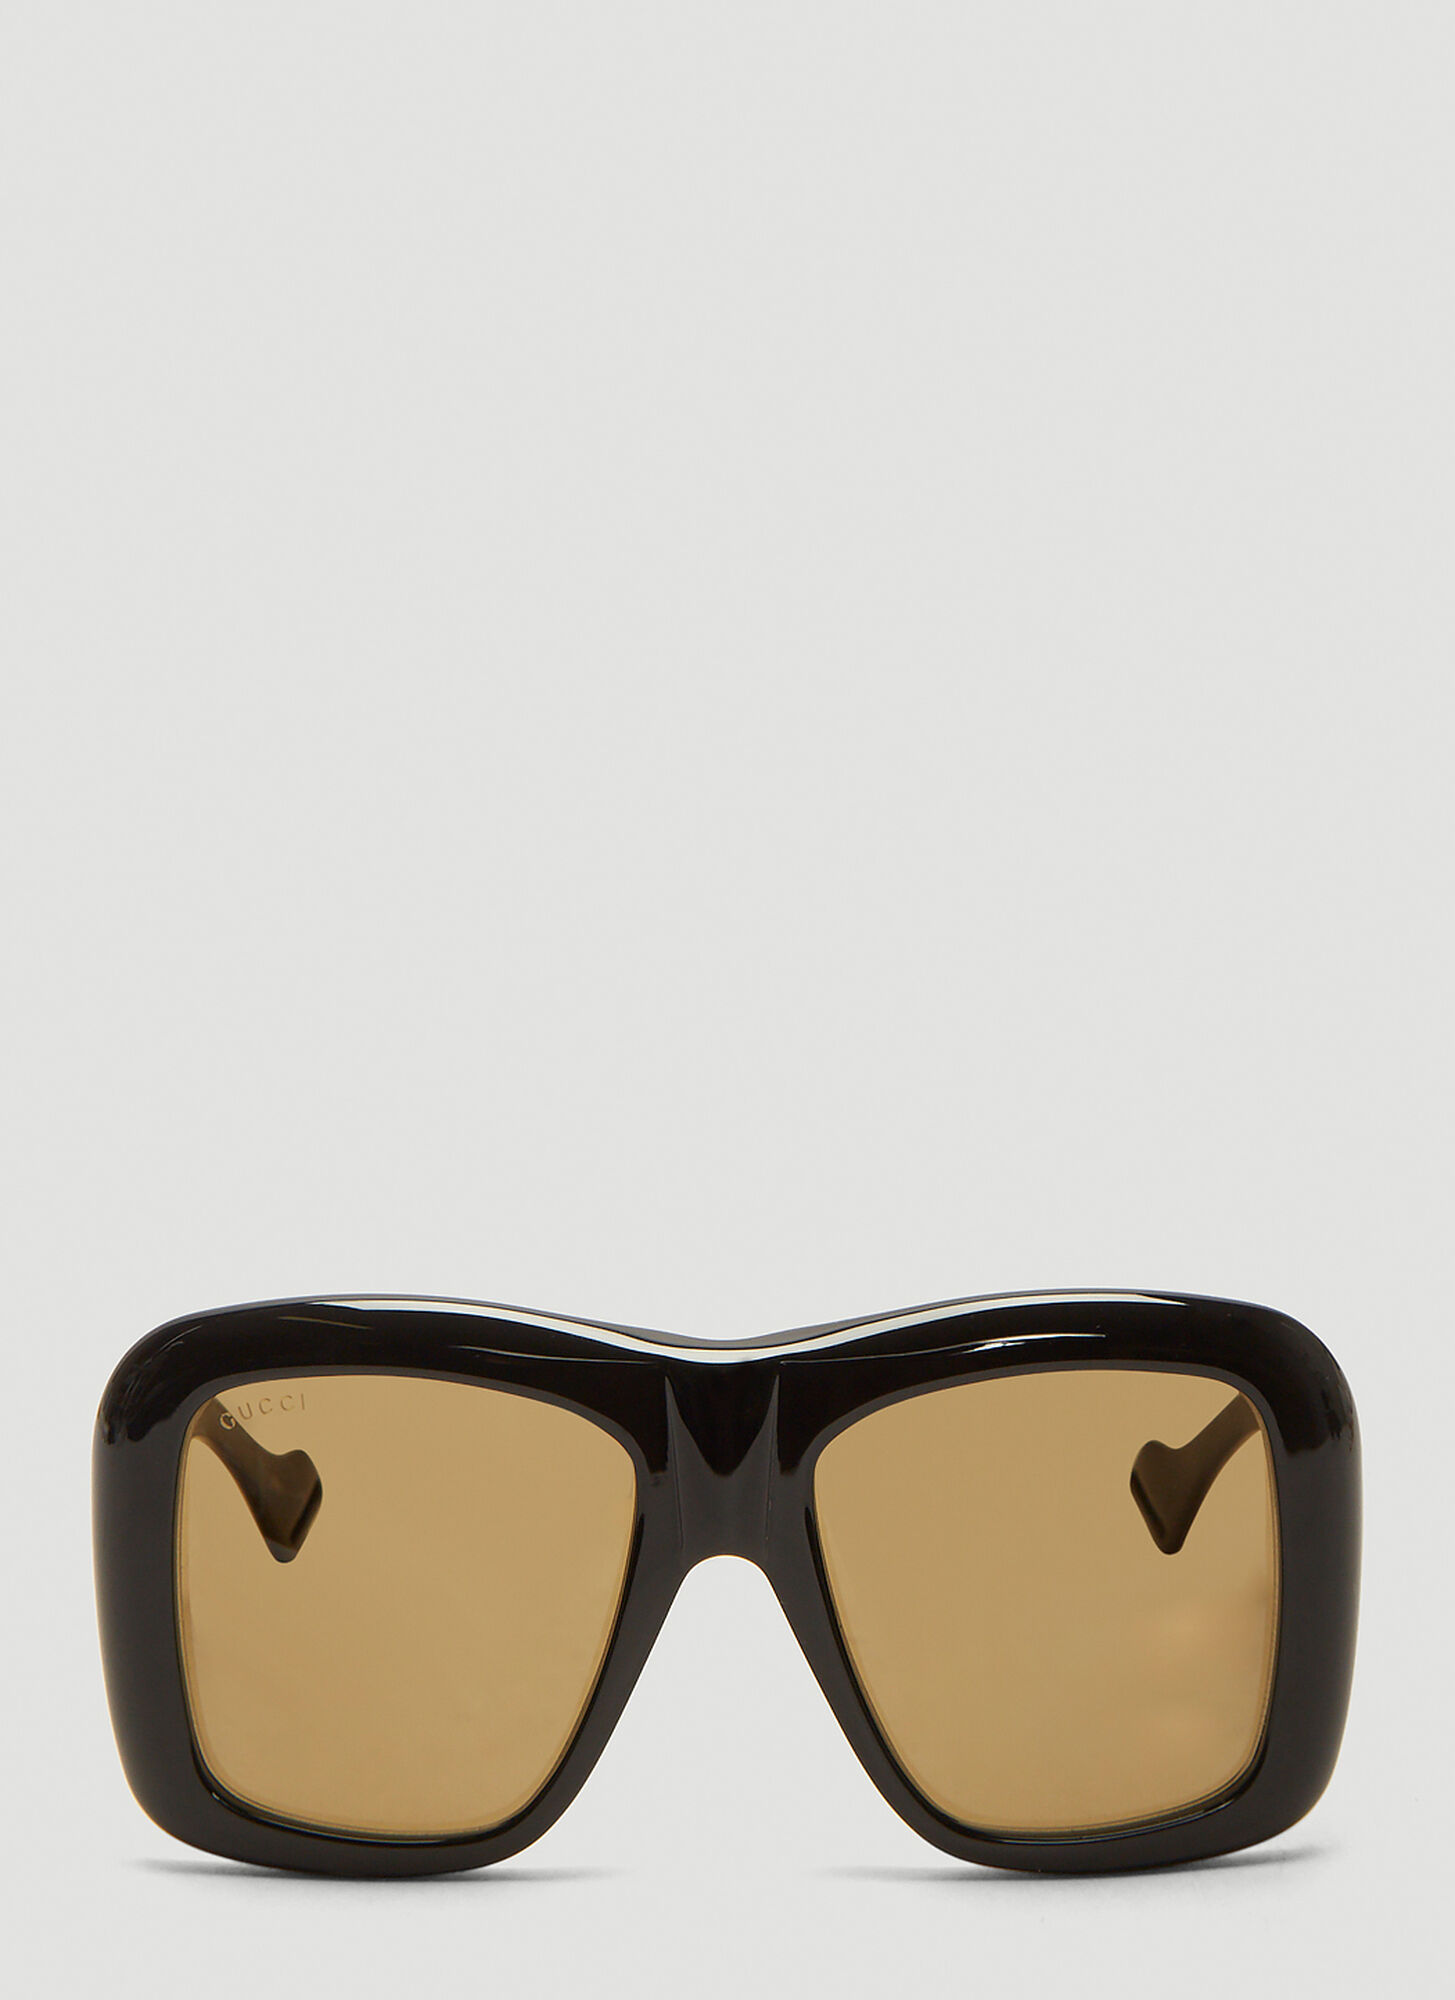 Gucci Oversized Square Frame Sunglasses in Black